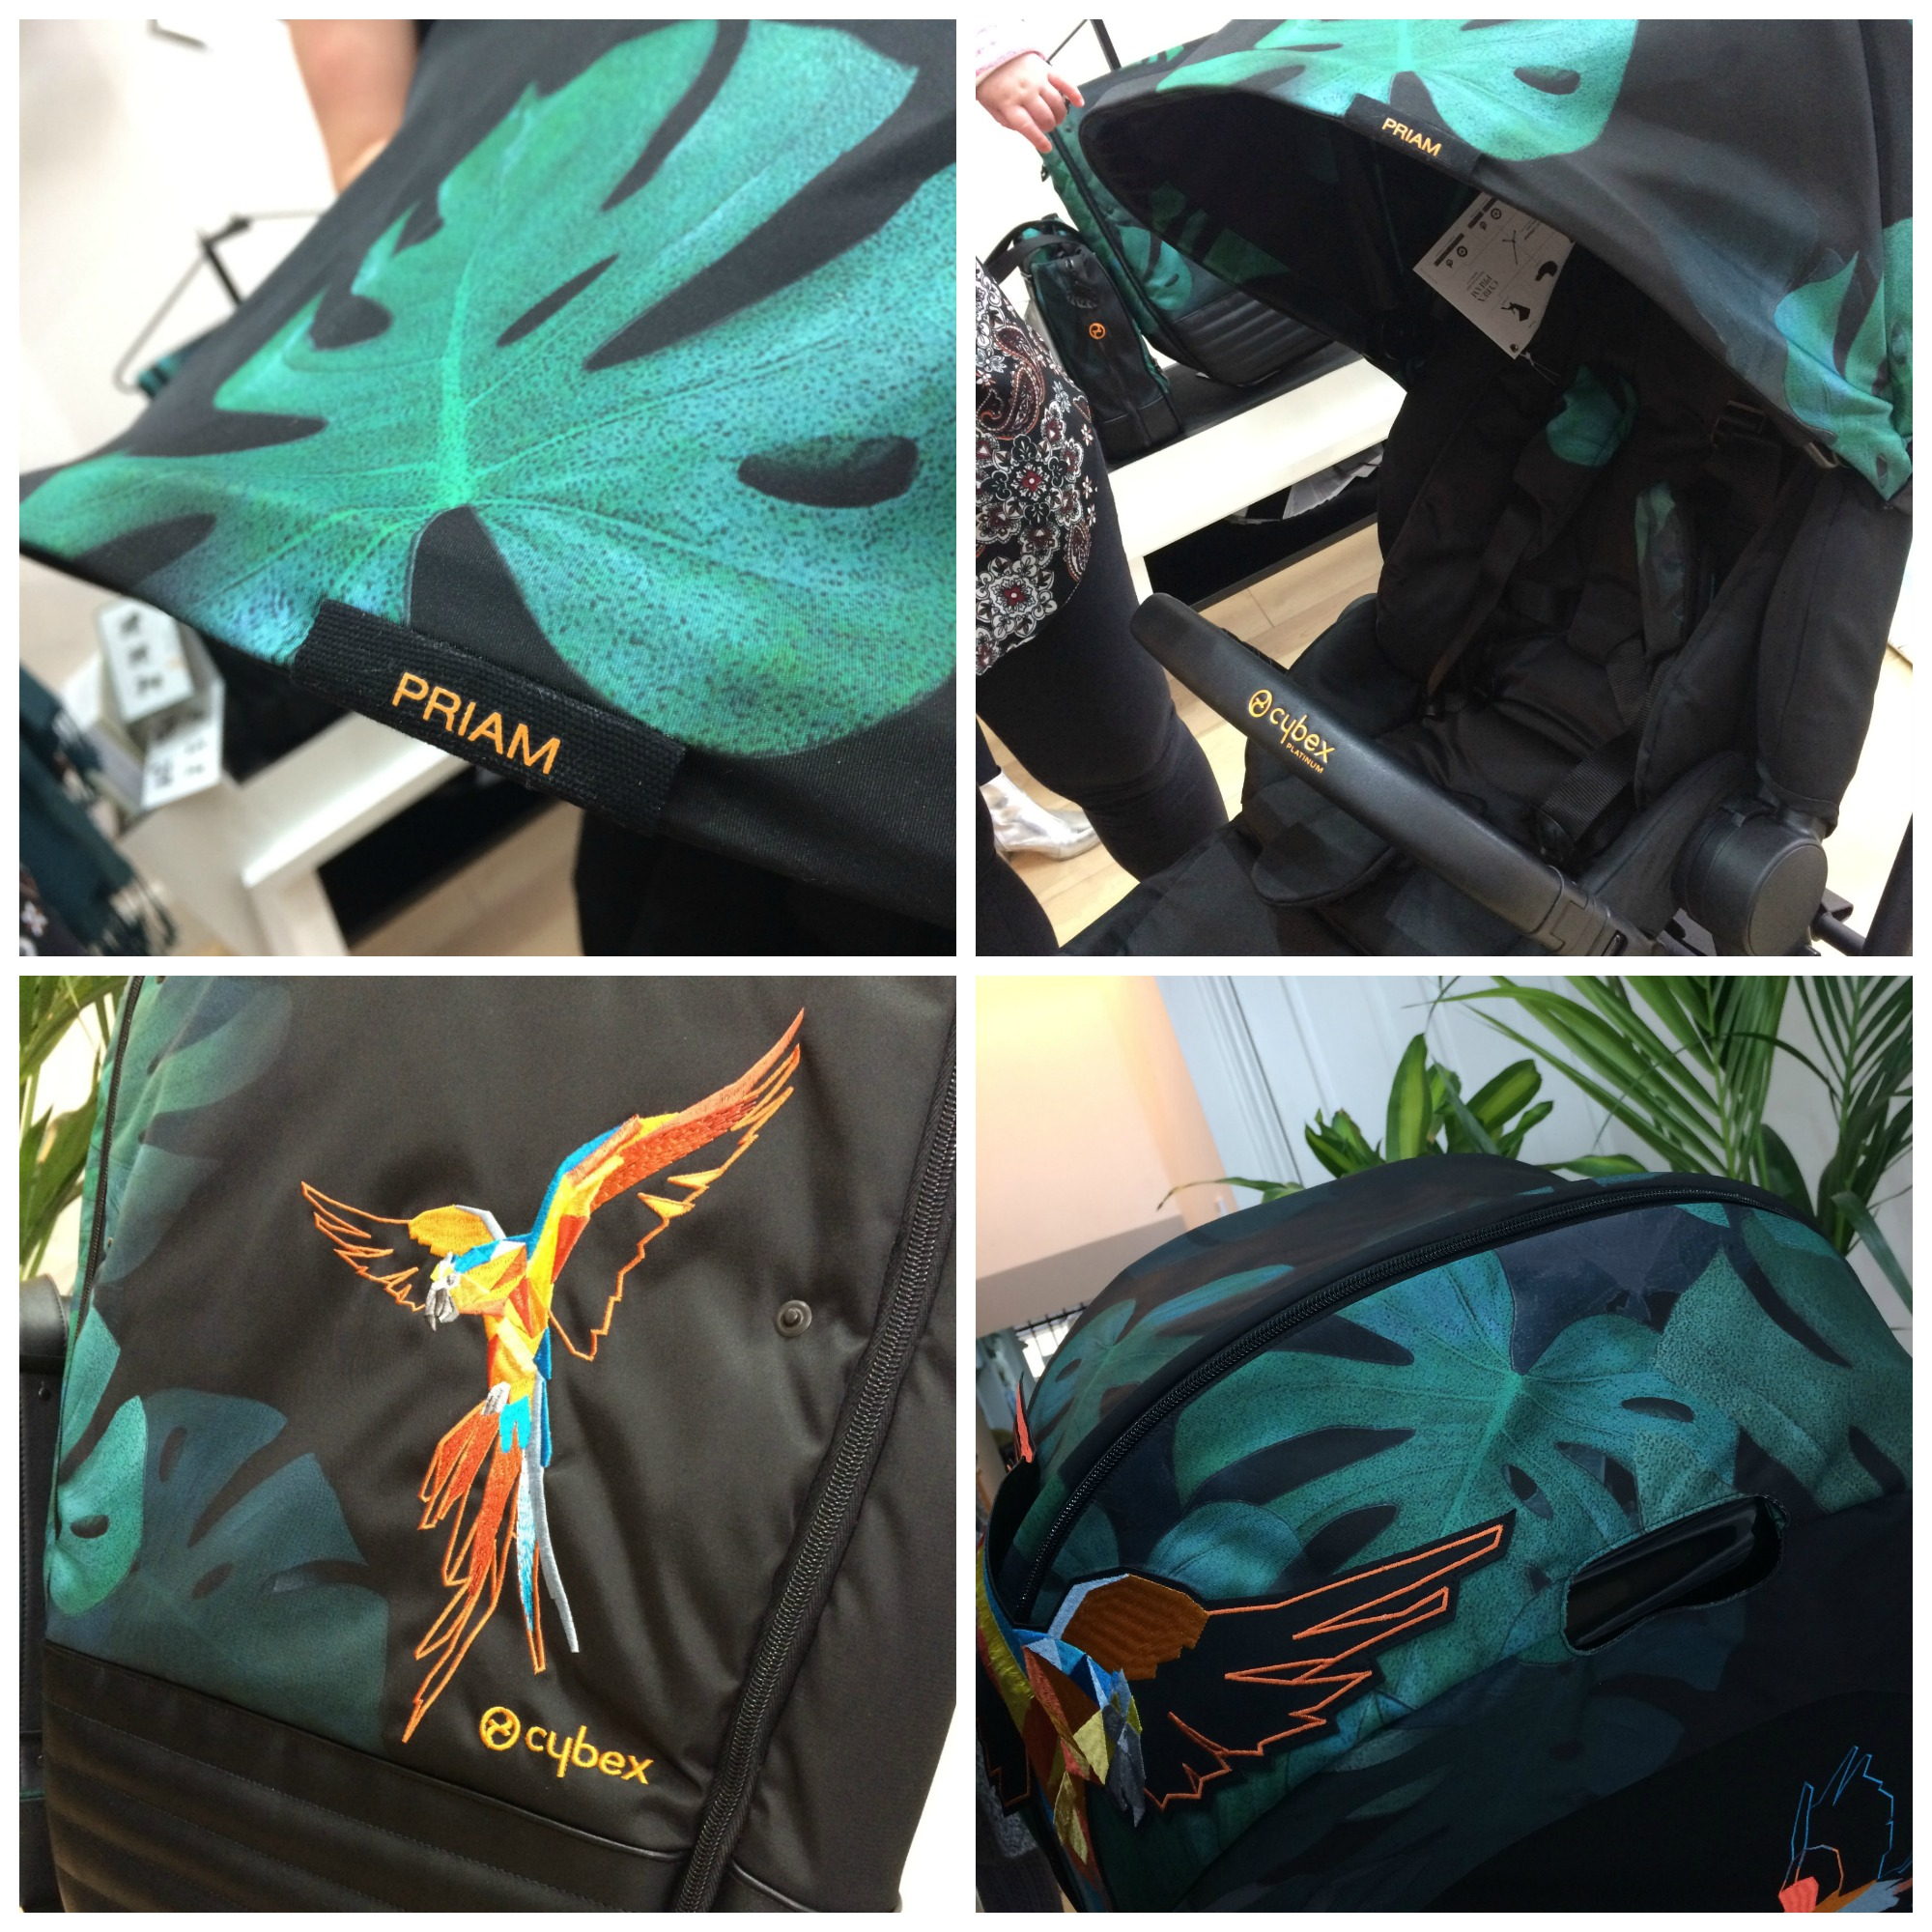 cybex-priam-review-collage